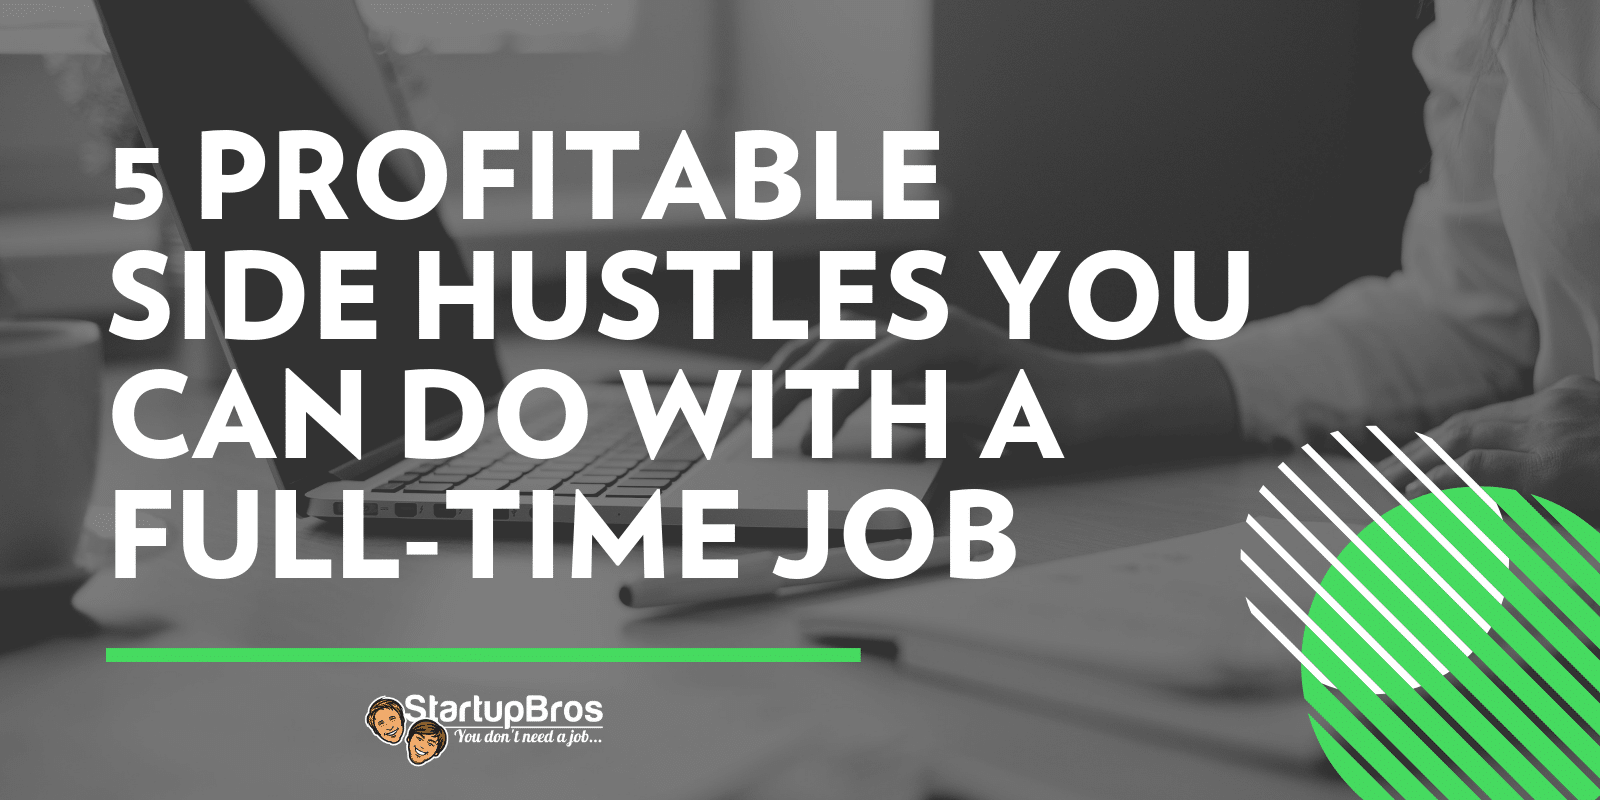 5 Profitable Side Hustles You Can Do with a Full-Time Job